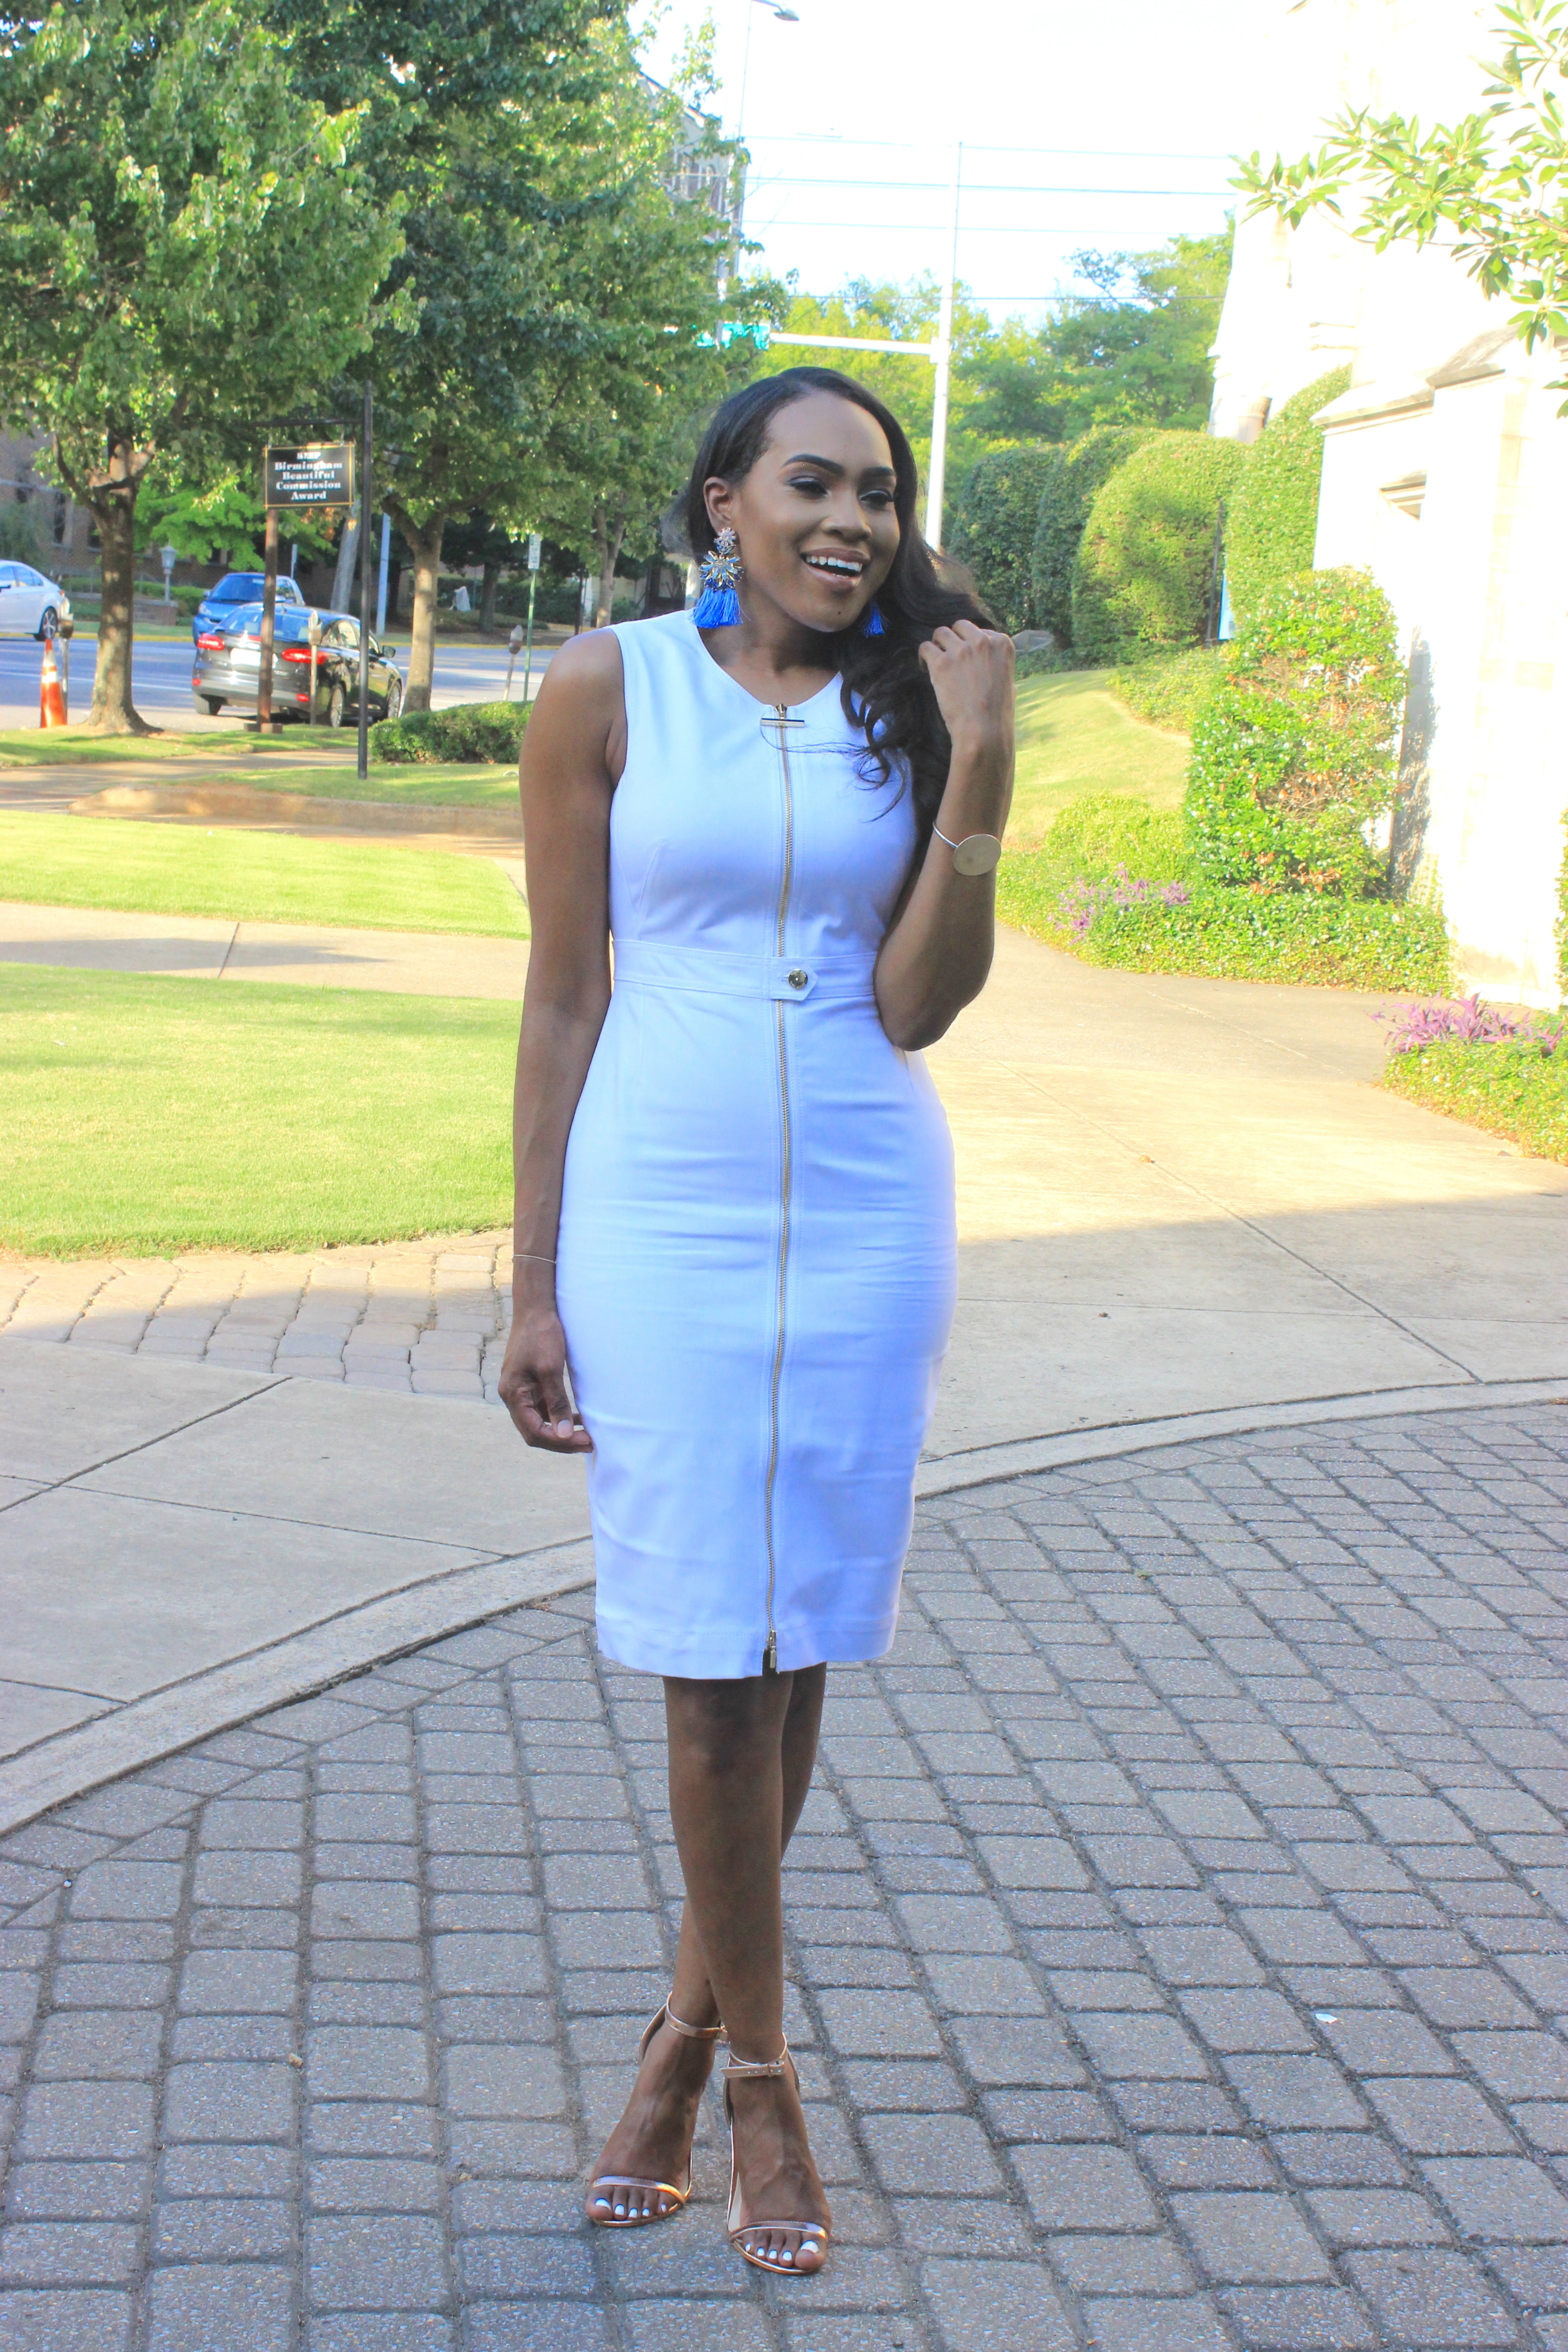 Style-Files-White-Sheath-Calvin-Klein-Dress-with-front-exposed-gold-zipper-sky-blue-fringe-earrings-truffle-collection-barely-there-heel-sandal-rose-gold-how-to-wear-white-to-work-birmingham-top-blogger-oohlalablog-5